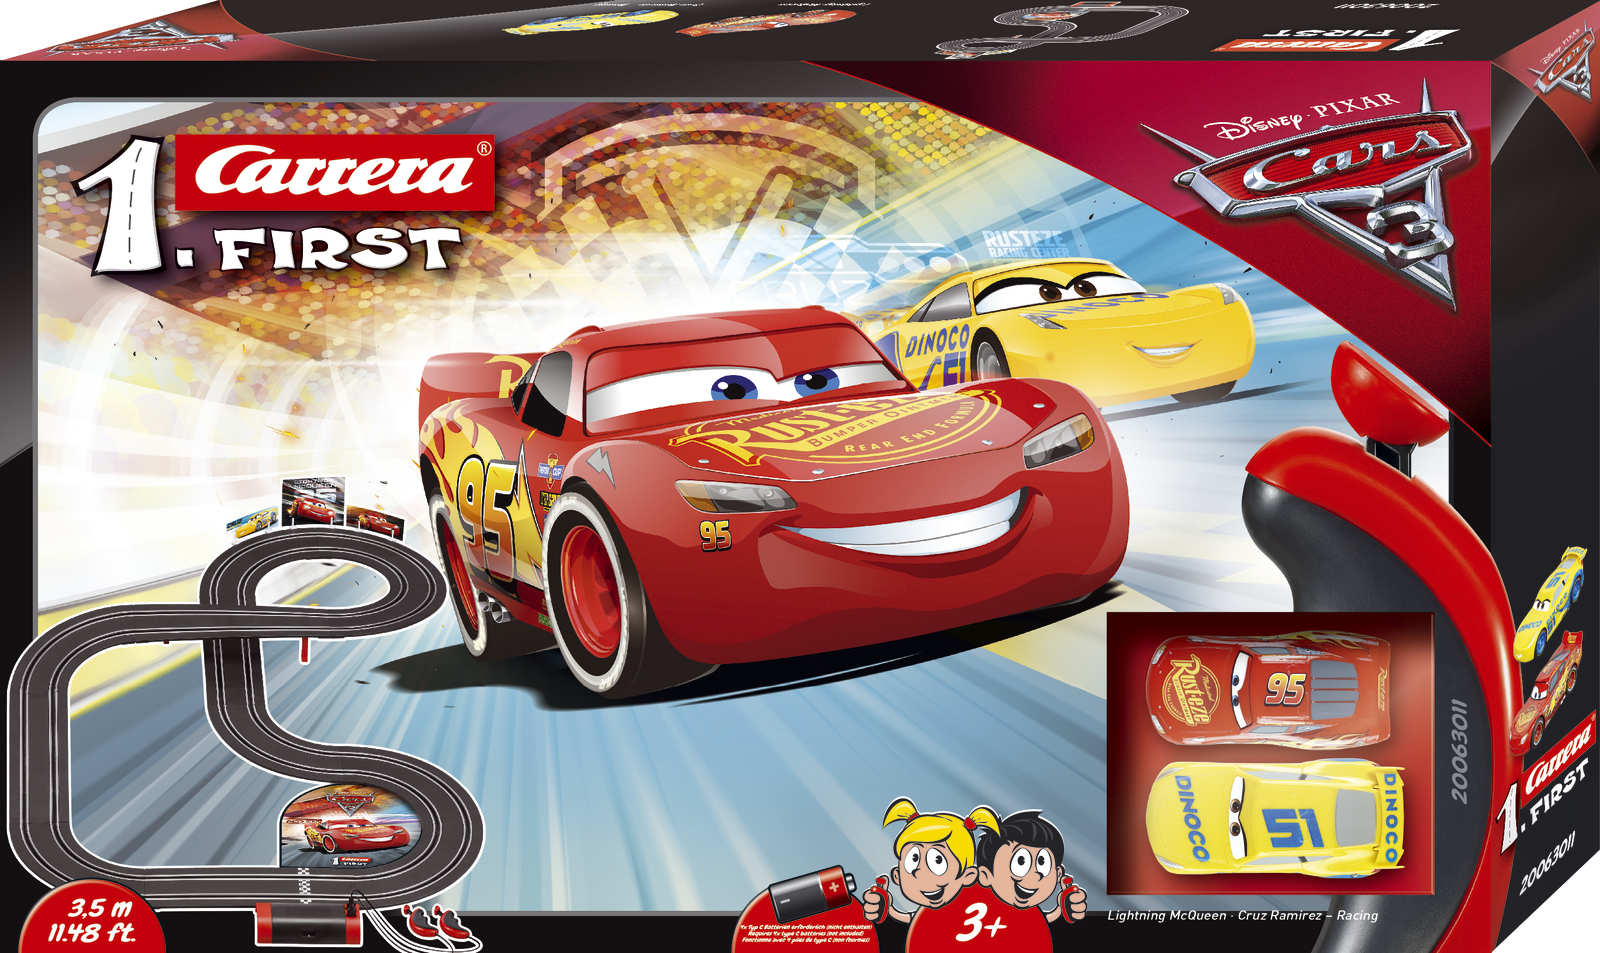 Carrera First: Disney Cars 3 - Slot Car Set #2 image